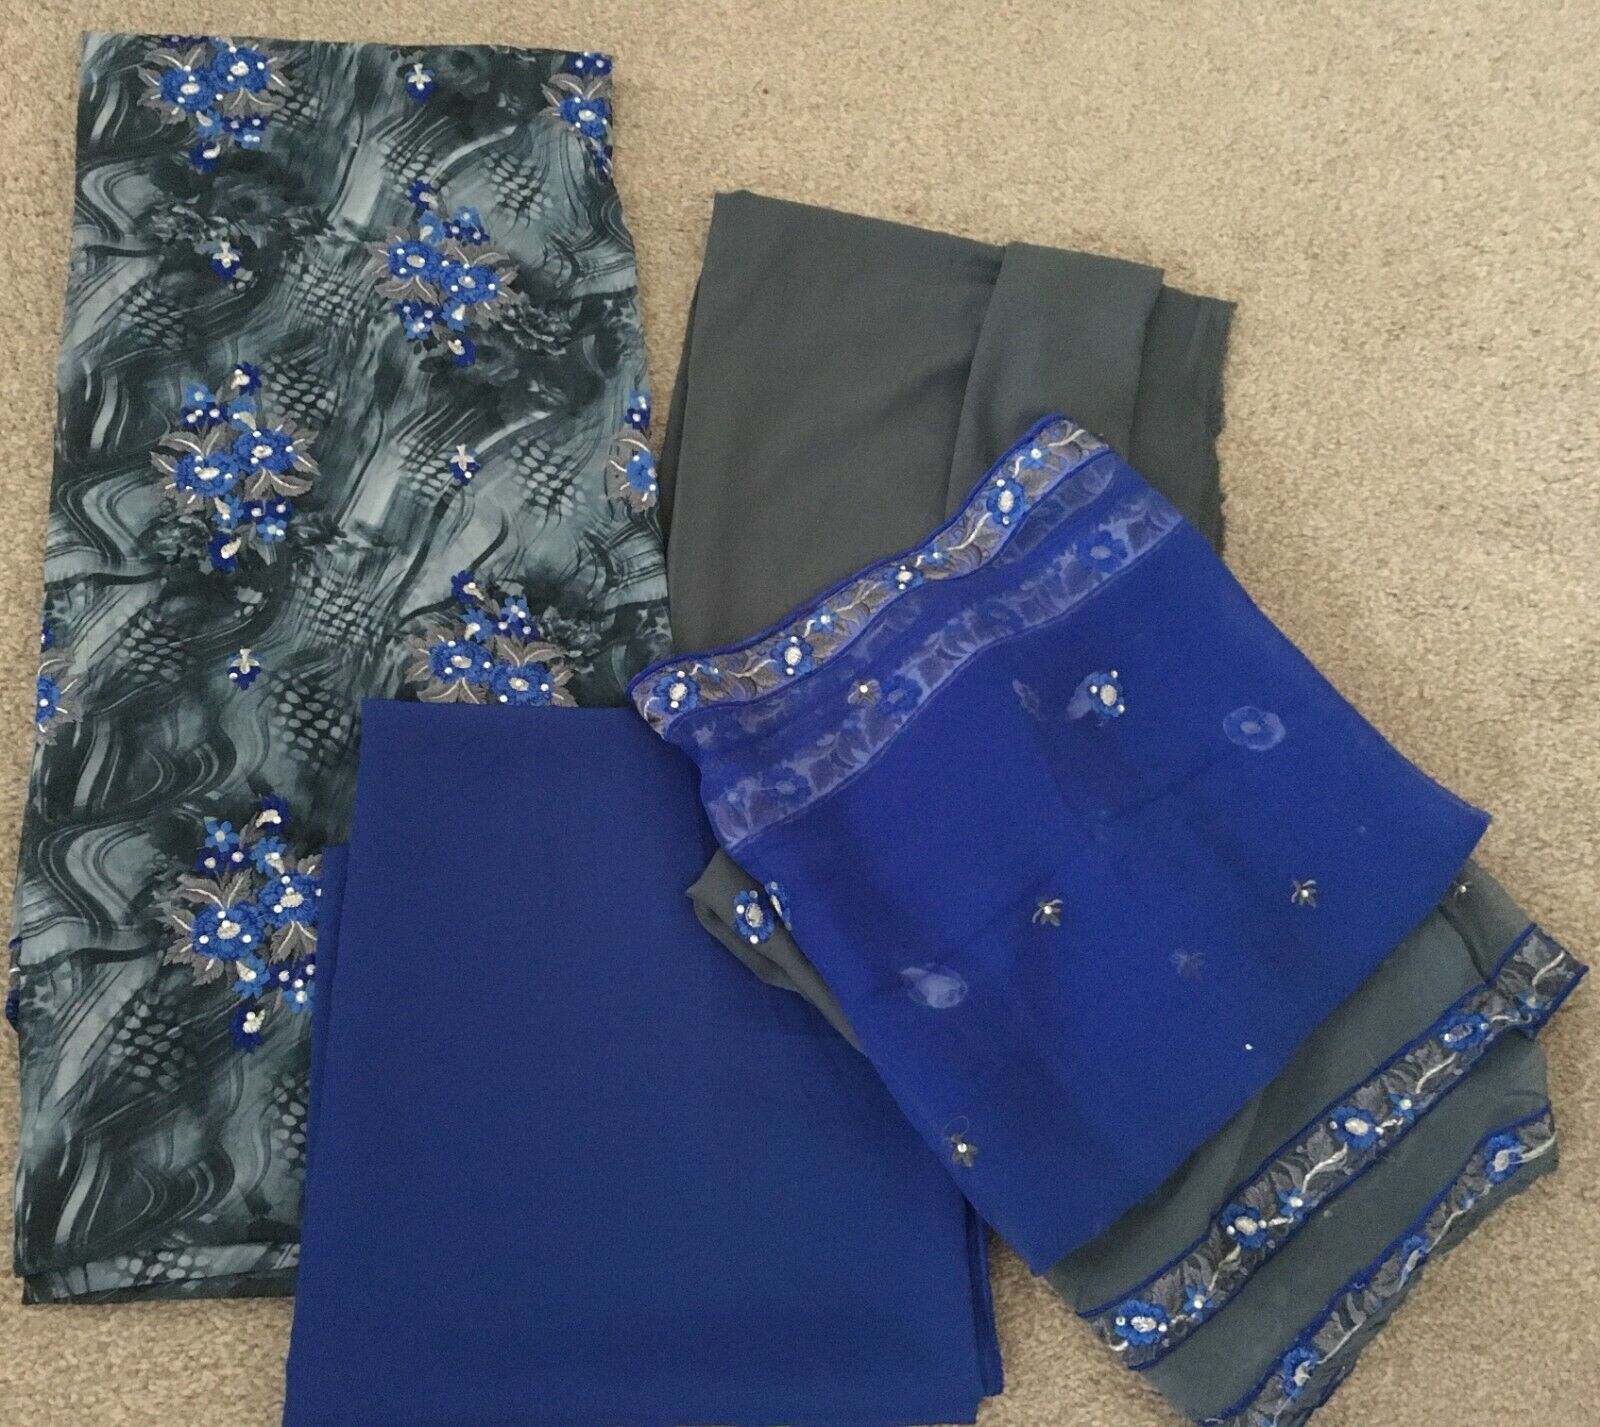 Women's Unstitched 4 piece Material for Saree / Sari Suits - Blue / Gray